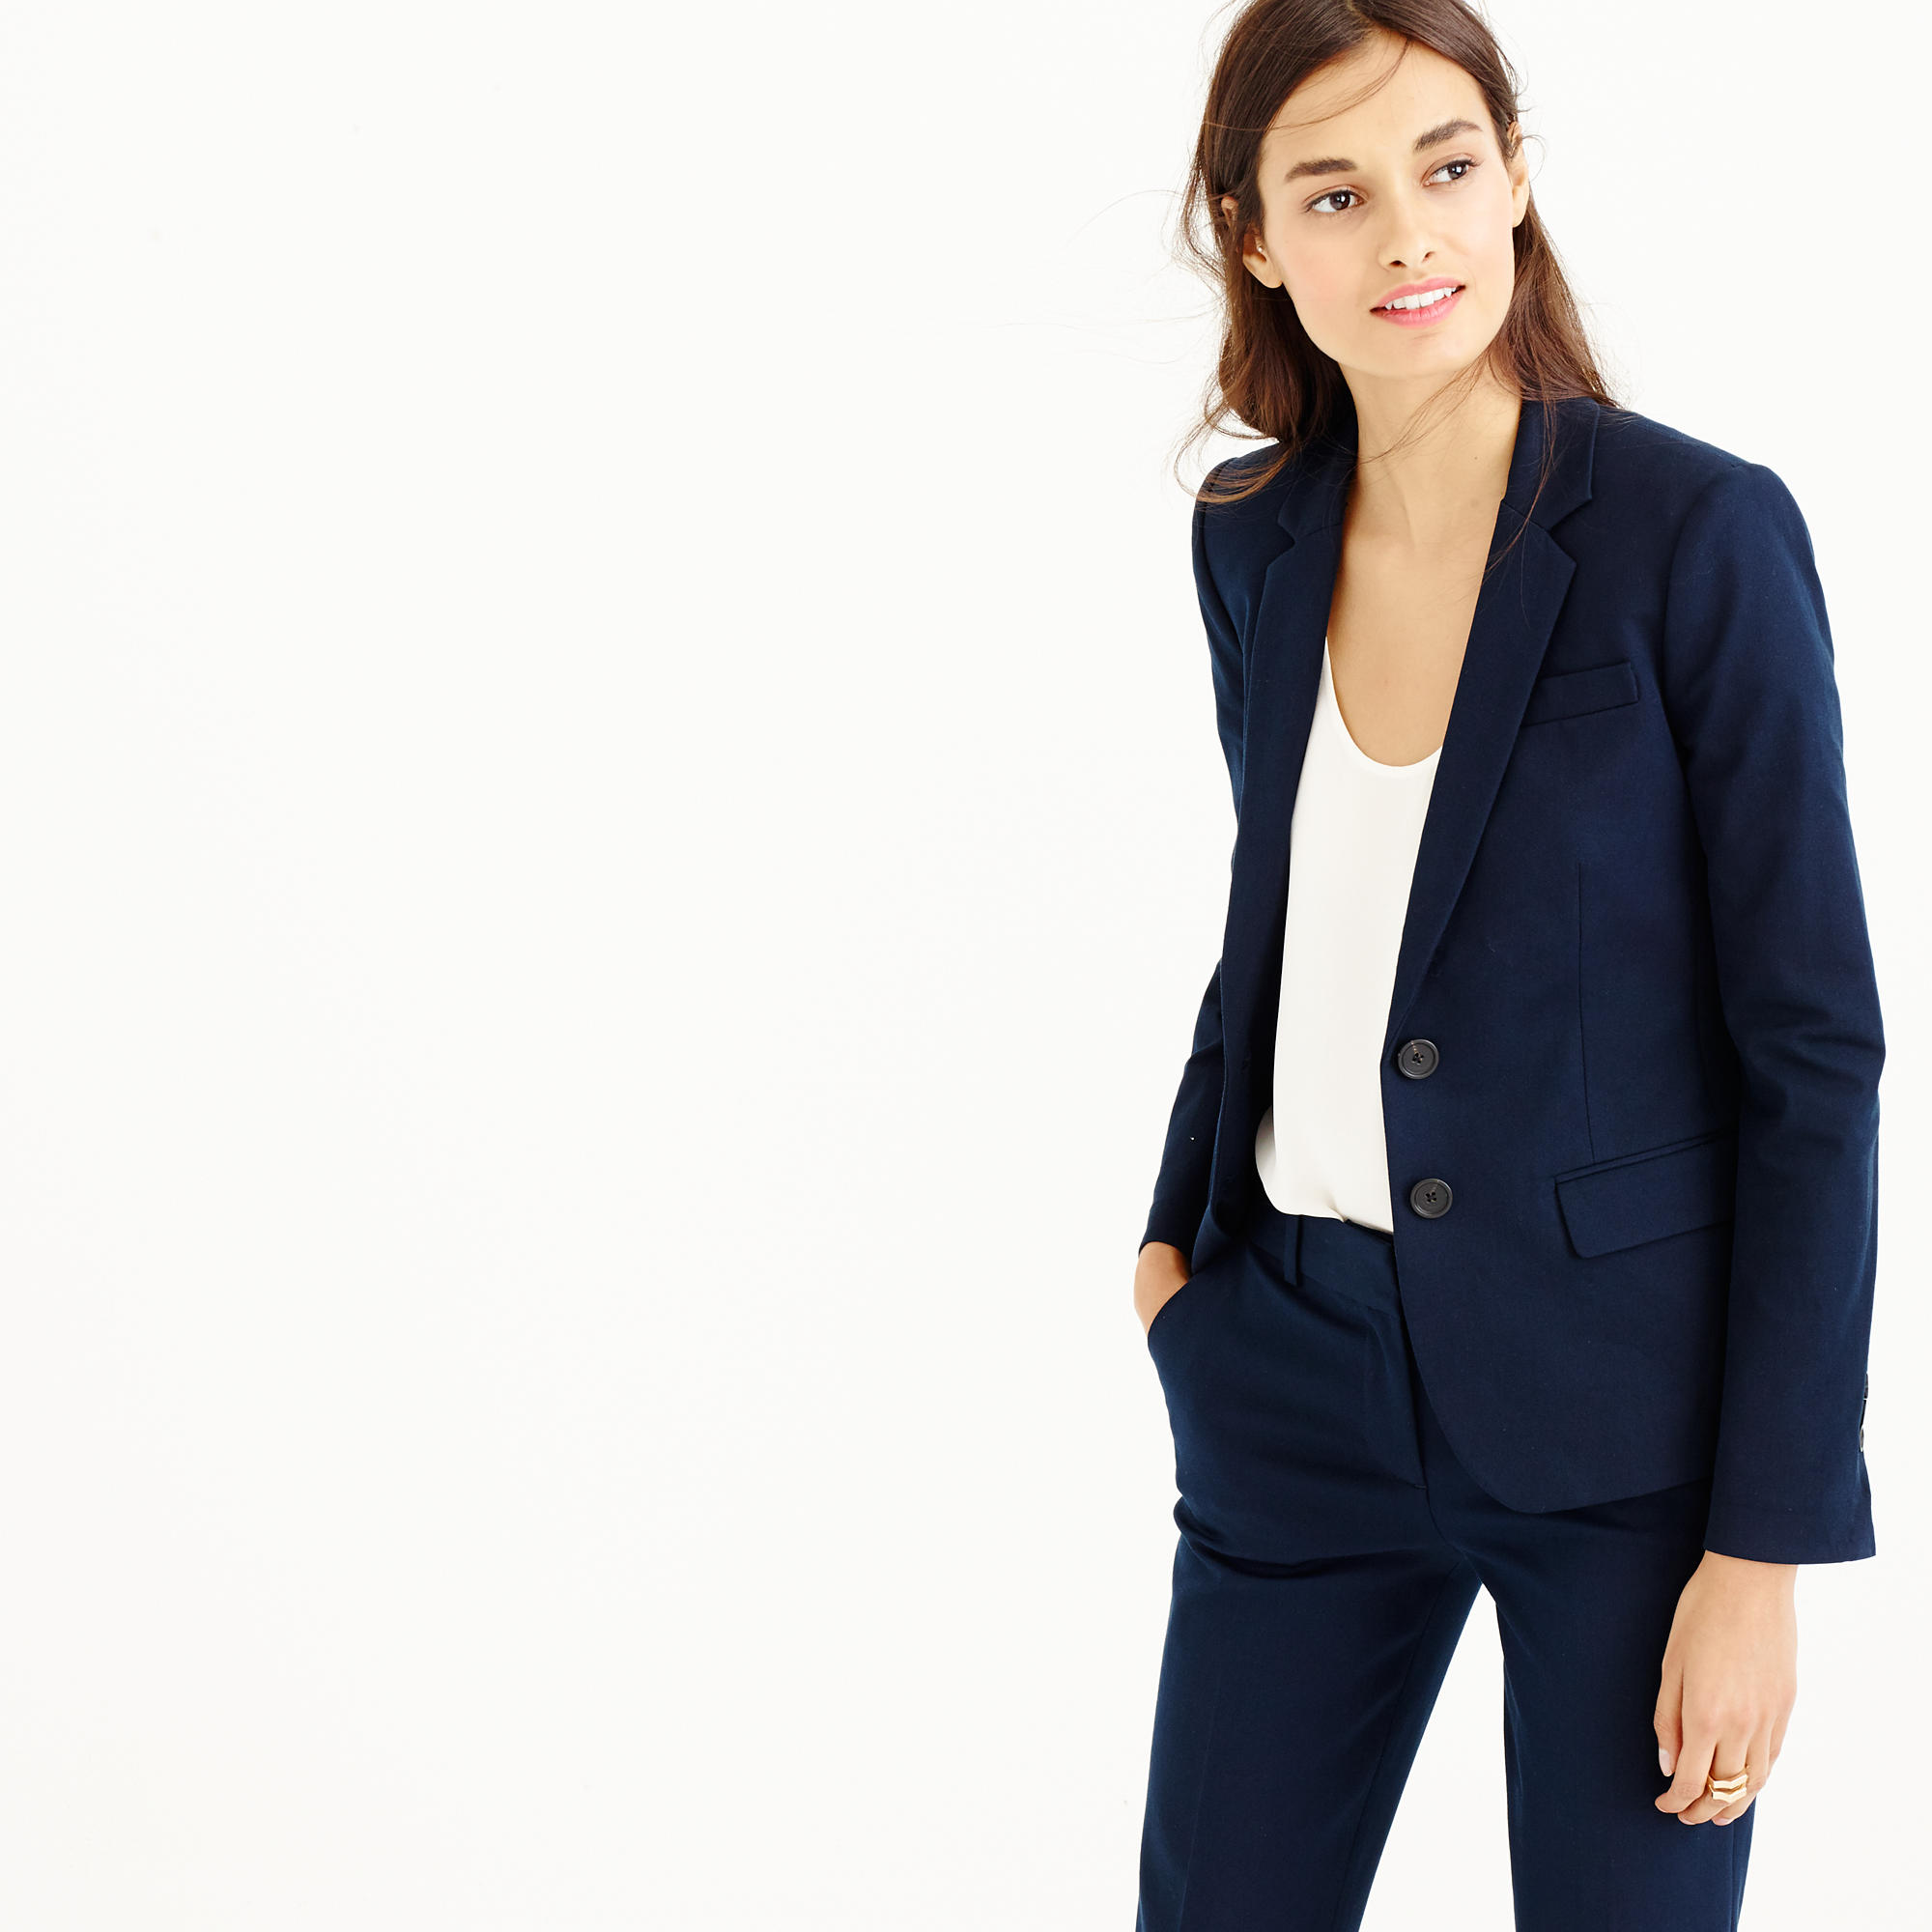 Refresh your work wardrobe with versatile women's jackets and blazers at New York & Company. Always polished and professional New York style. Refresh your work wardrobe with versatile women's jackets and blazers at New York & Company. Always polished and professional New York style. All Jackets. 7th Avenue Navy Open- Front Jacket. $